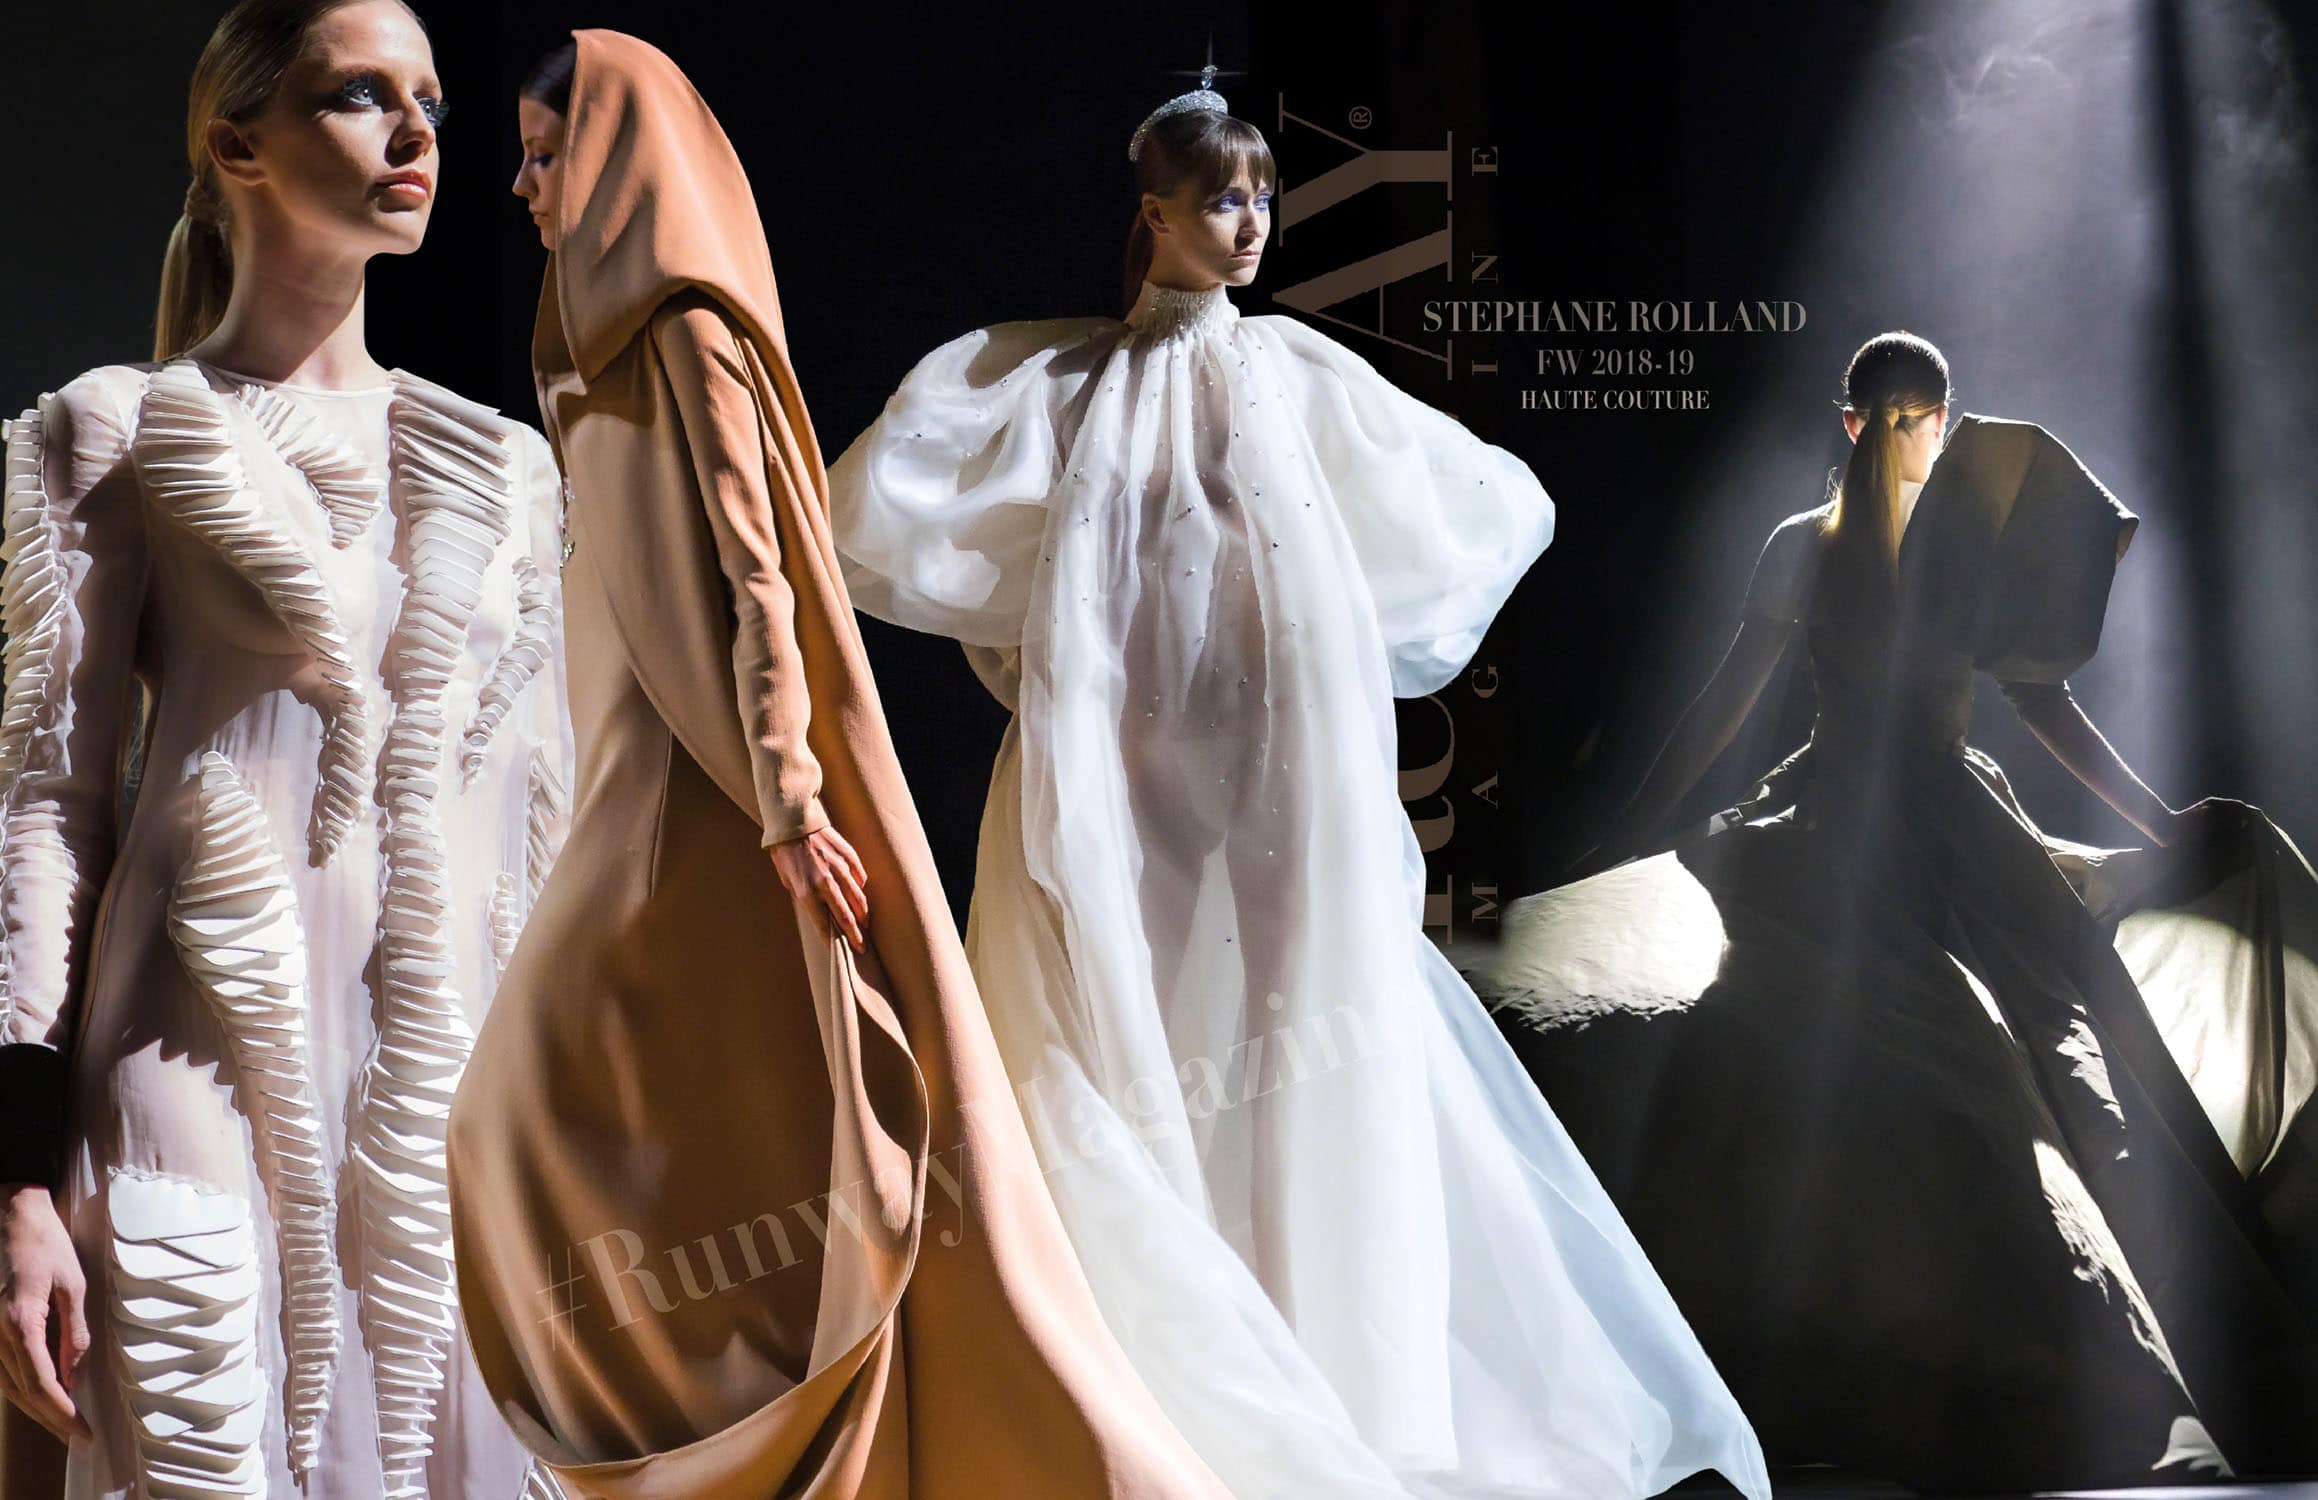 Stephane Rolland Haute Couture Fall-Winter 2018-19 Paris Fashion Week by RUNWAY MAGAZINE